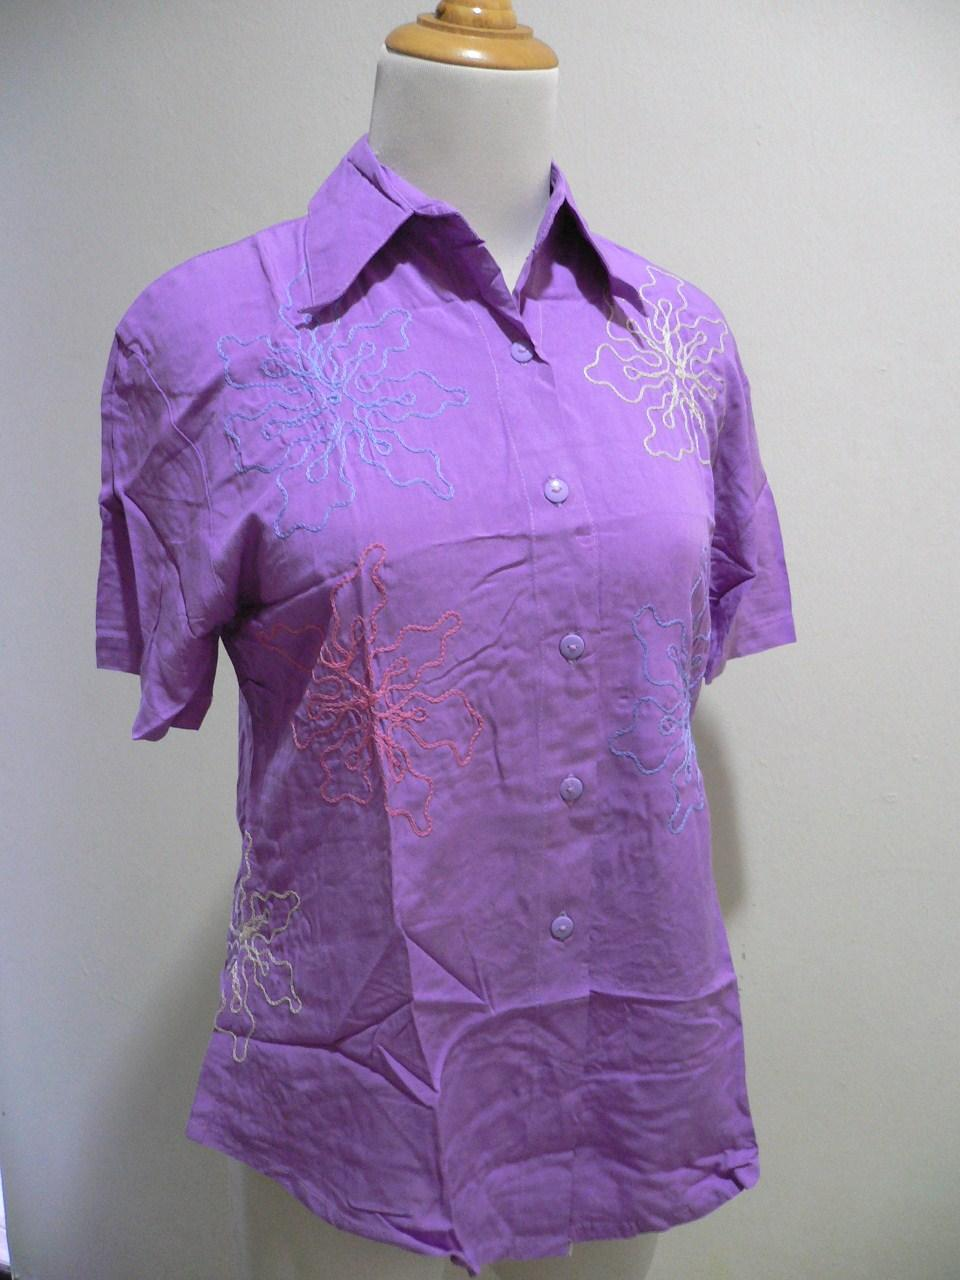 'SEASON' Lady Stick Shirt -Purple